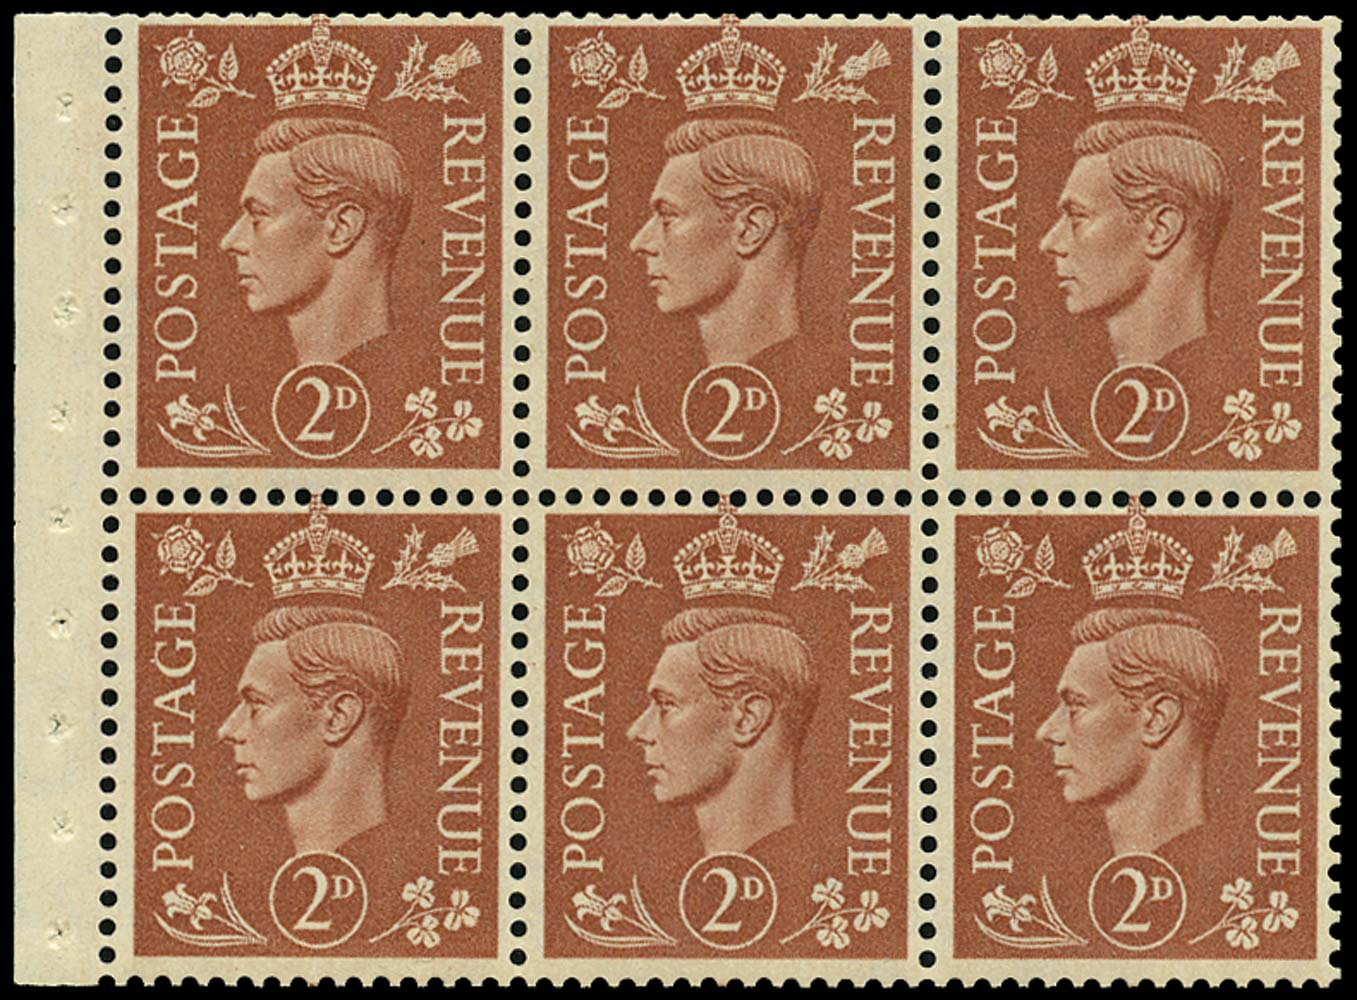 GB 1951  SG506d Booklet pane